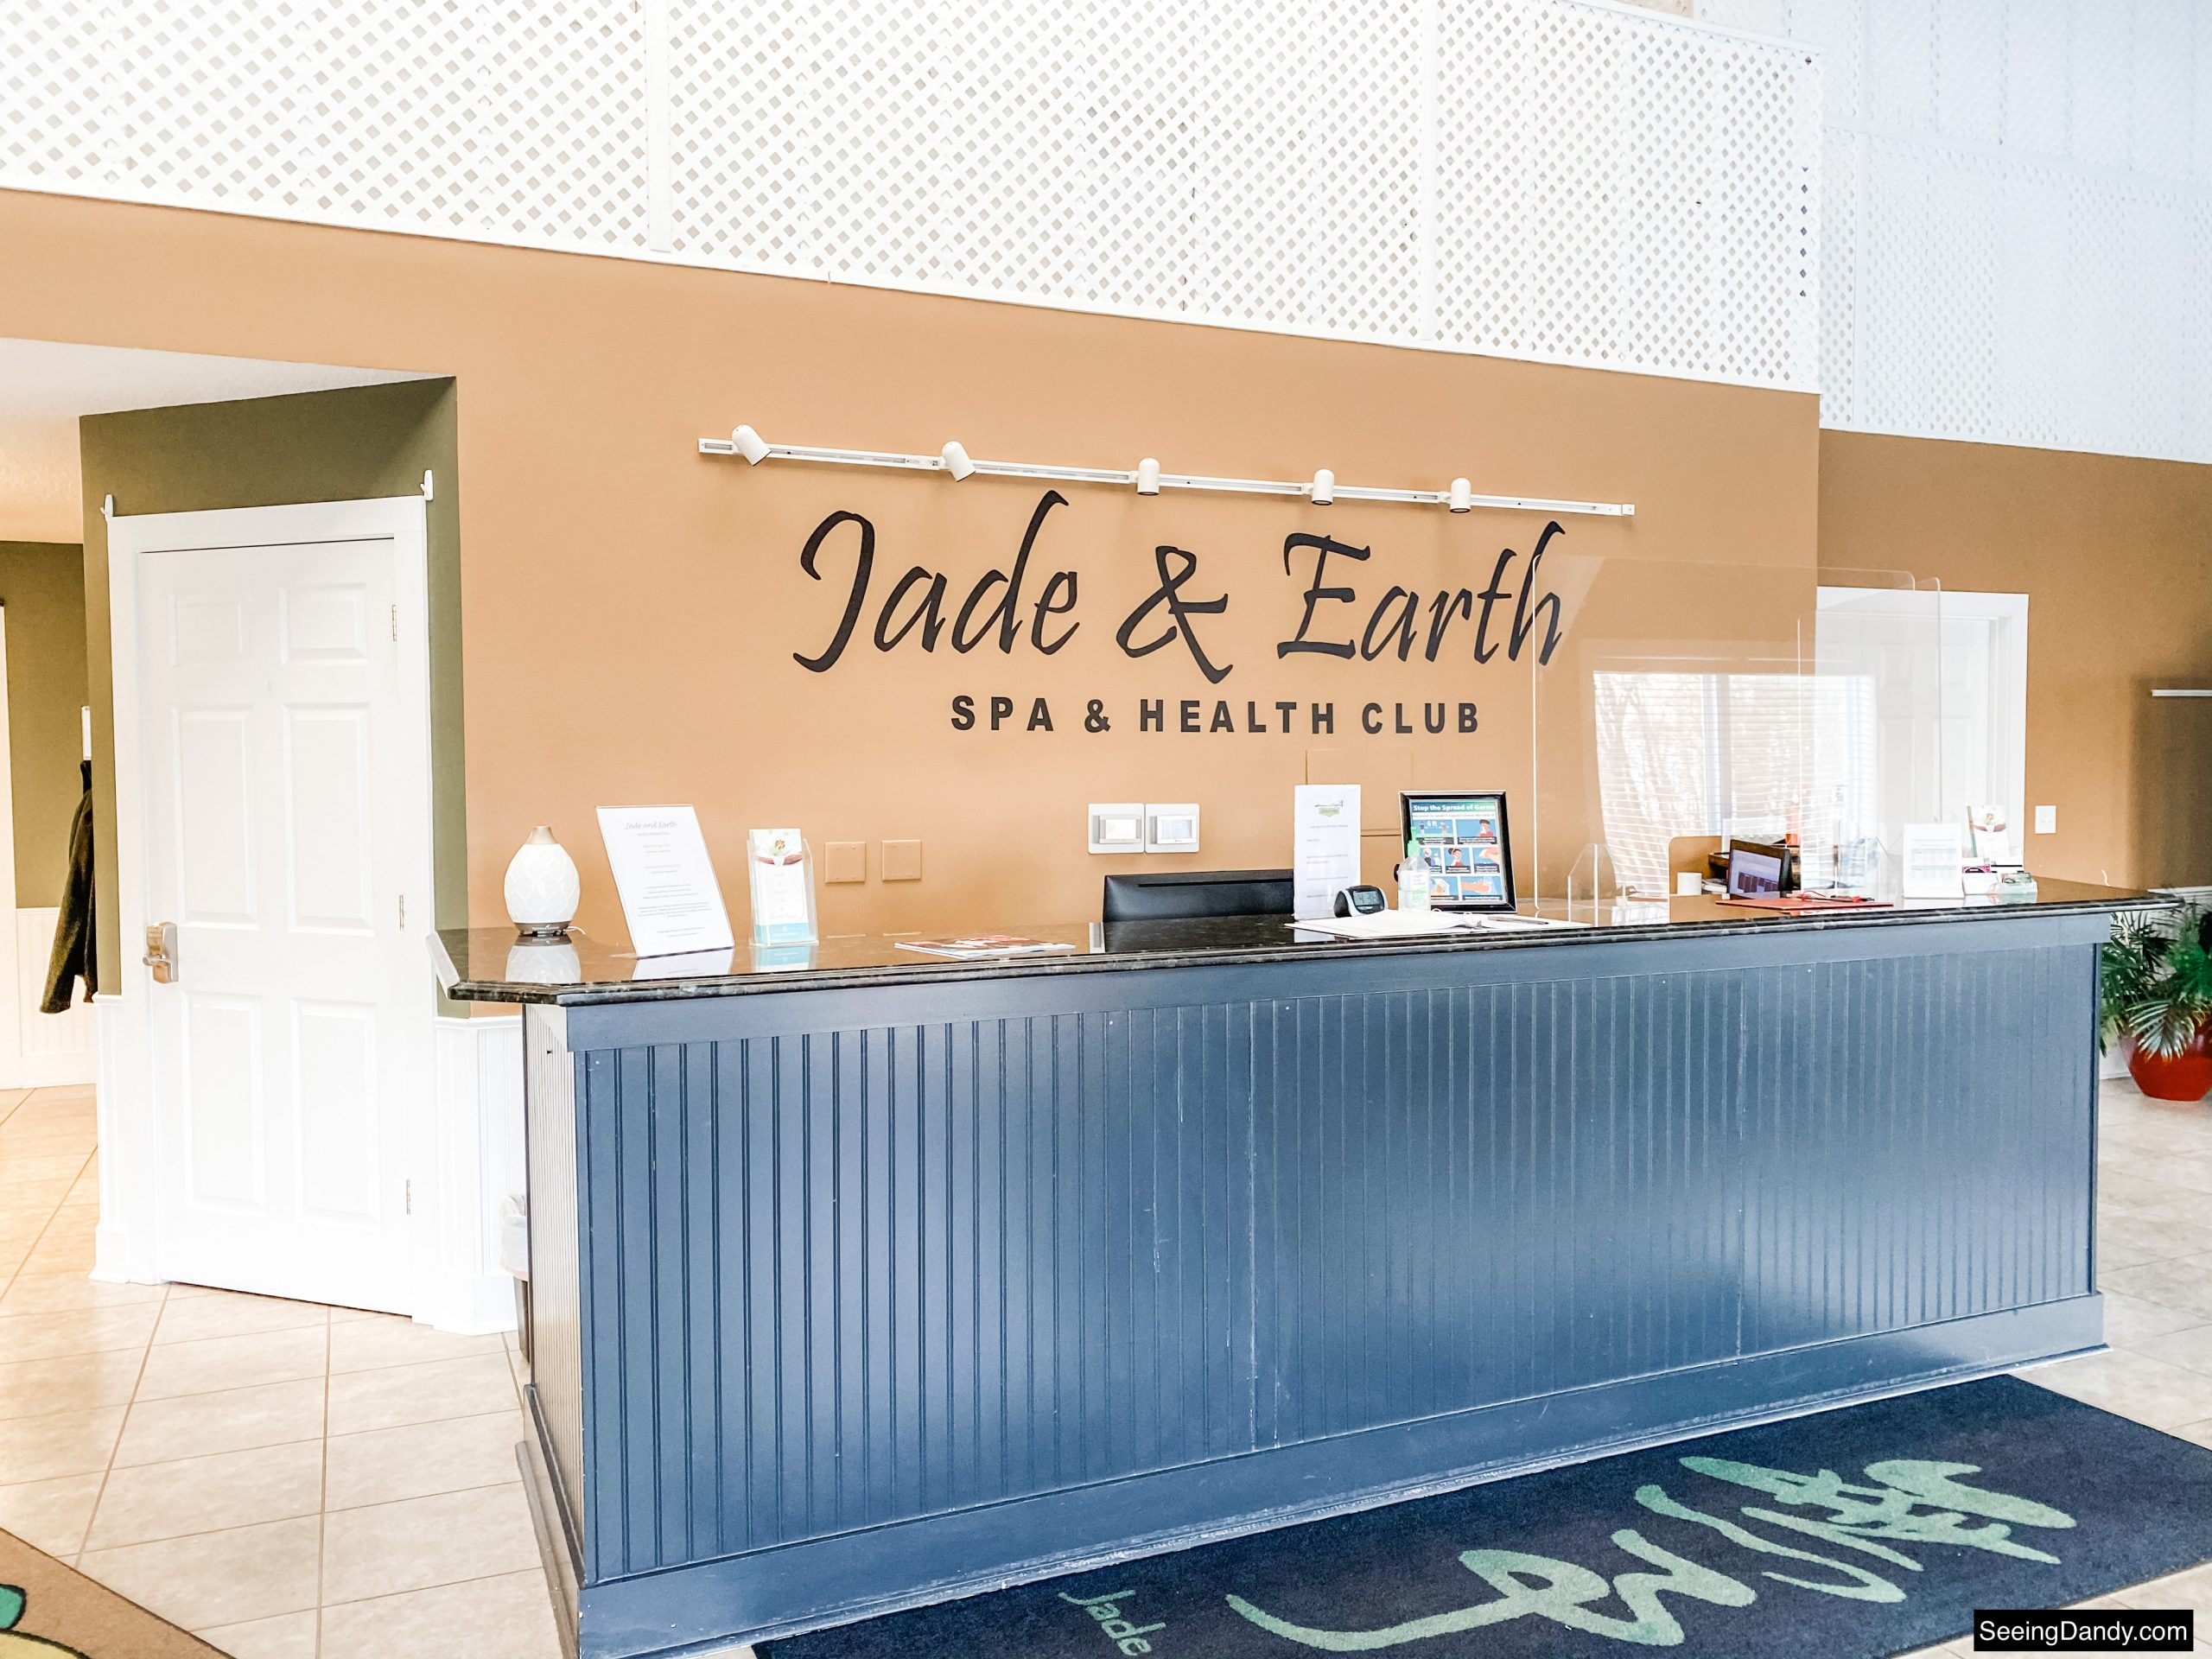 jade and earth spa health center, green turtle bay spa, green turtle bay indoor pool